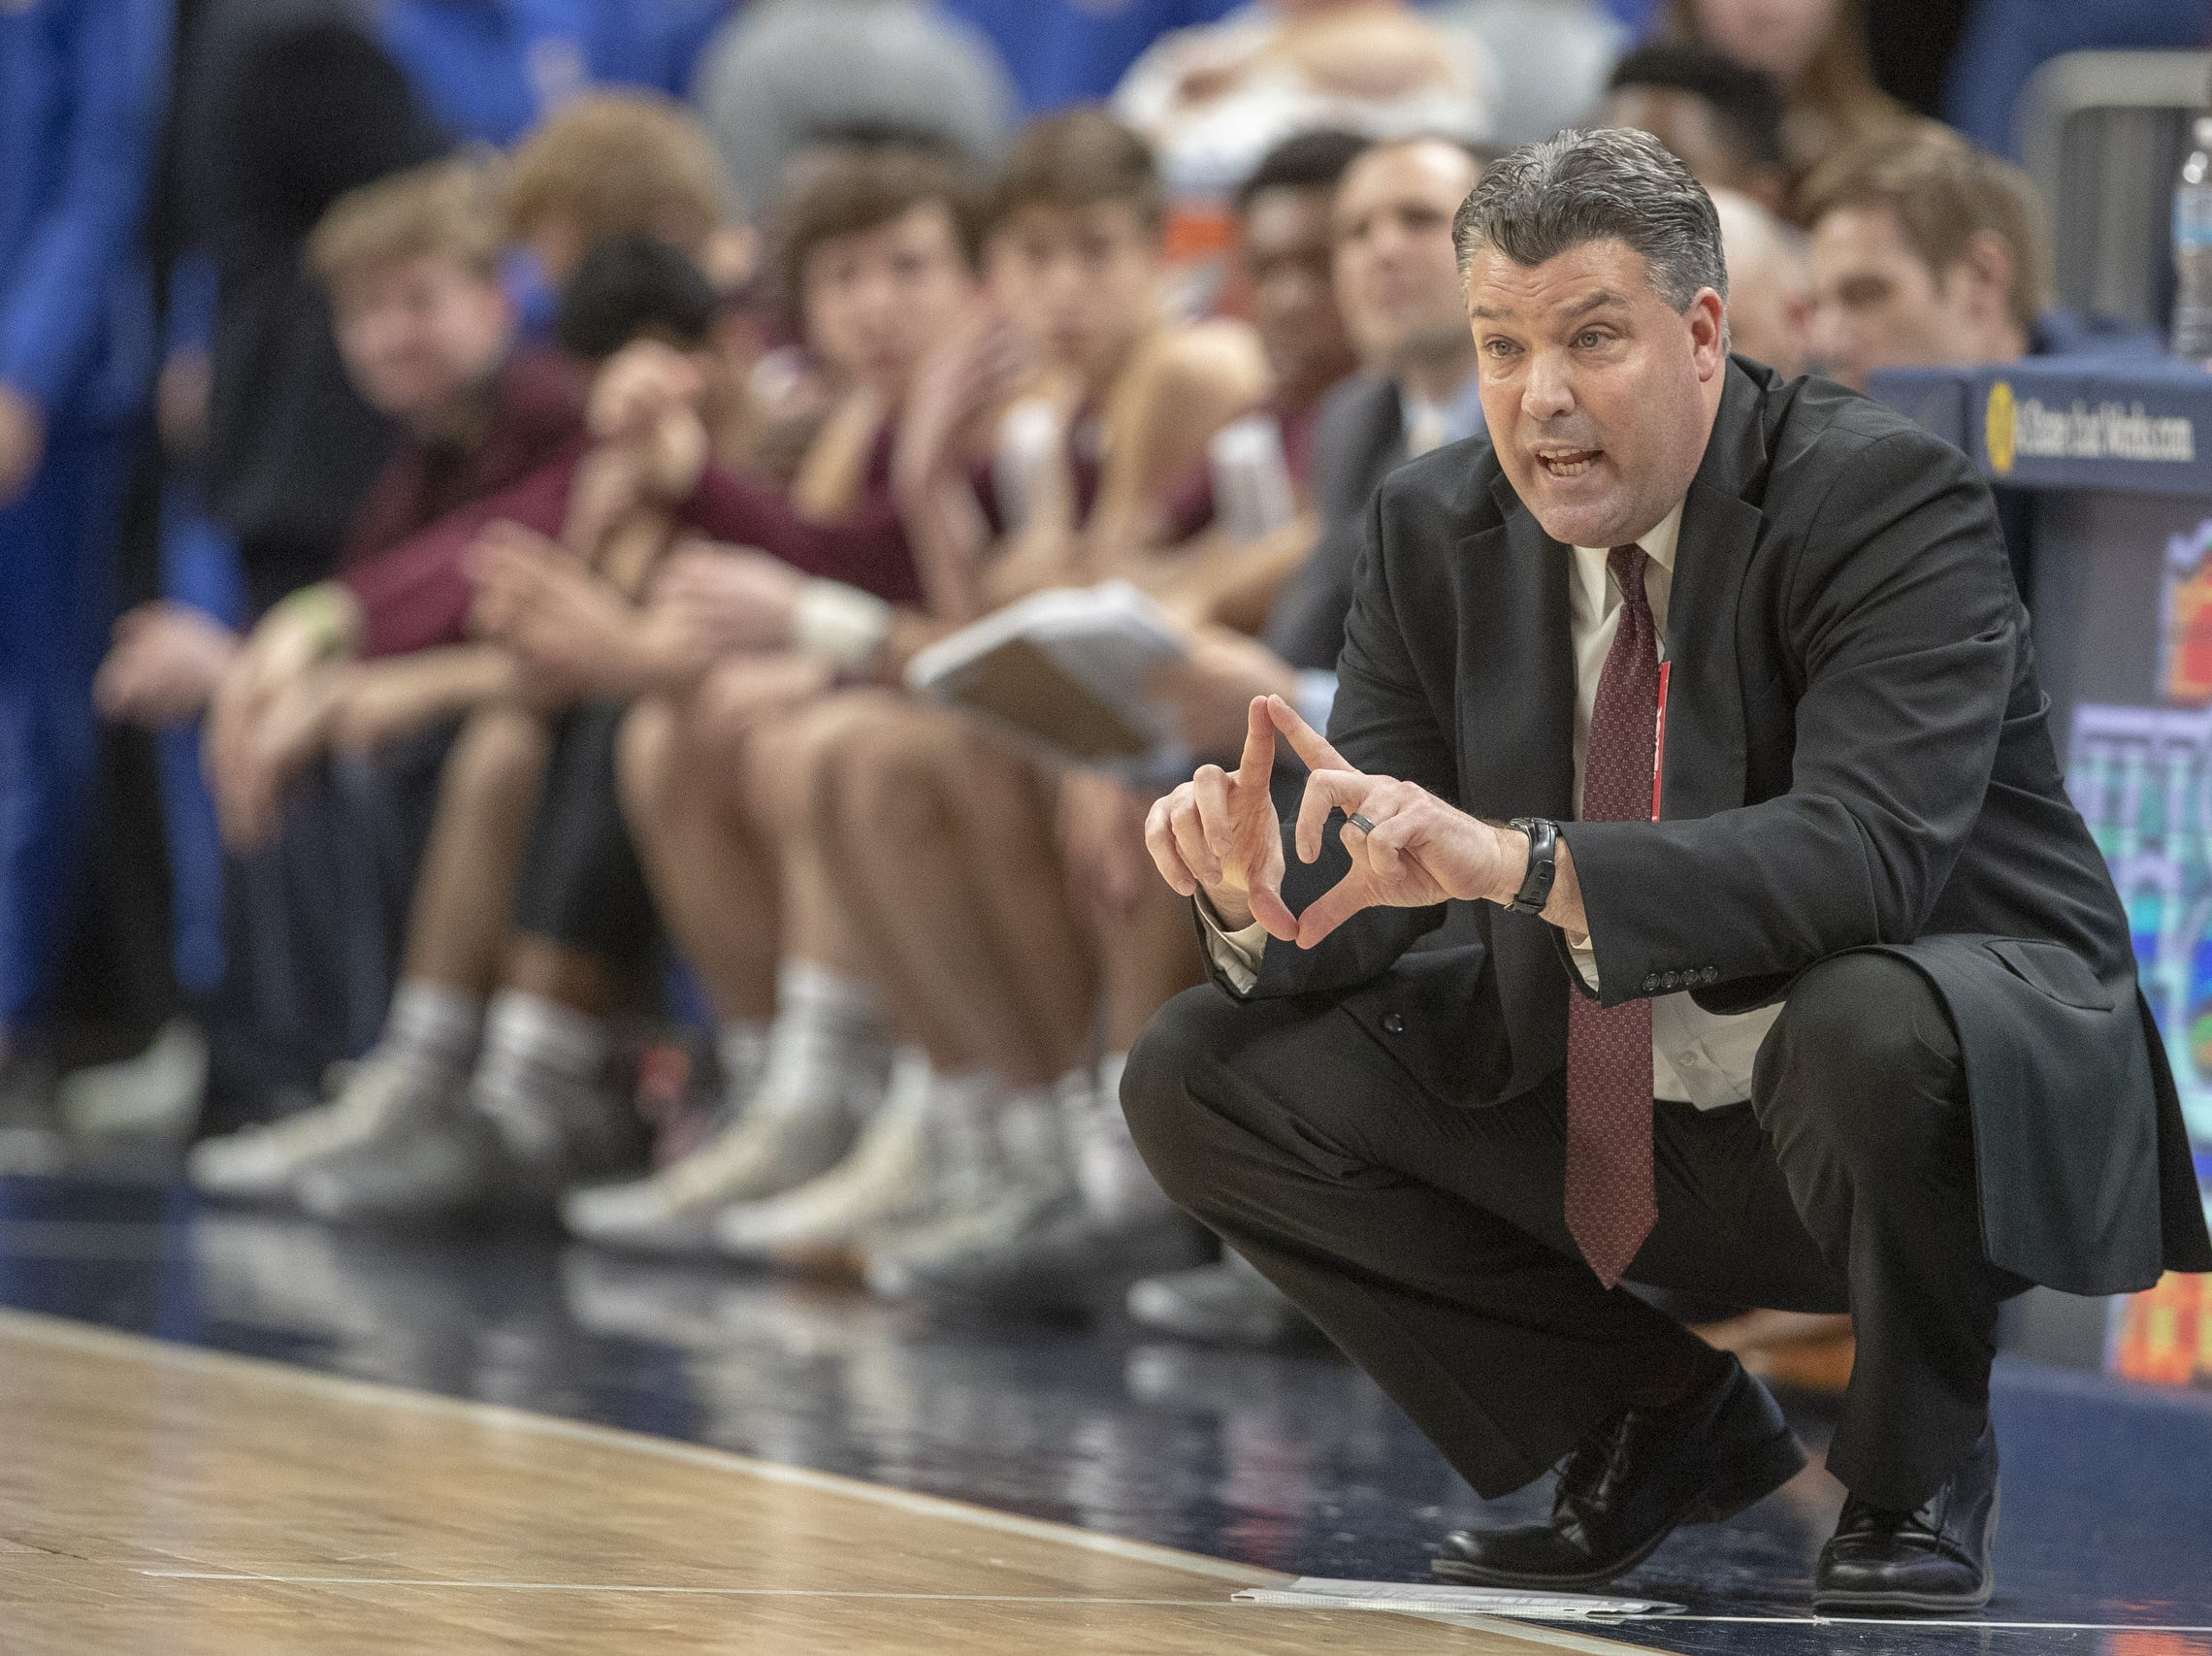 Mark Galloway, head coach of Culver Academies vs. Silver Creek Dragons in the Class 3S Boys Basketball State Final, Bankers Life Fieldhouse, Indianapolis, Saturday, March 23, 2019. Silver Creek won 52-49.